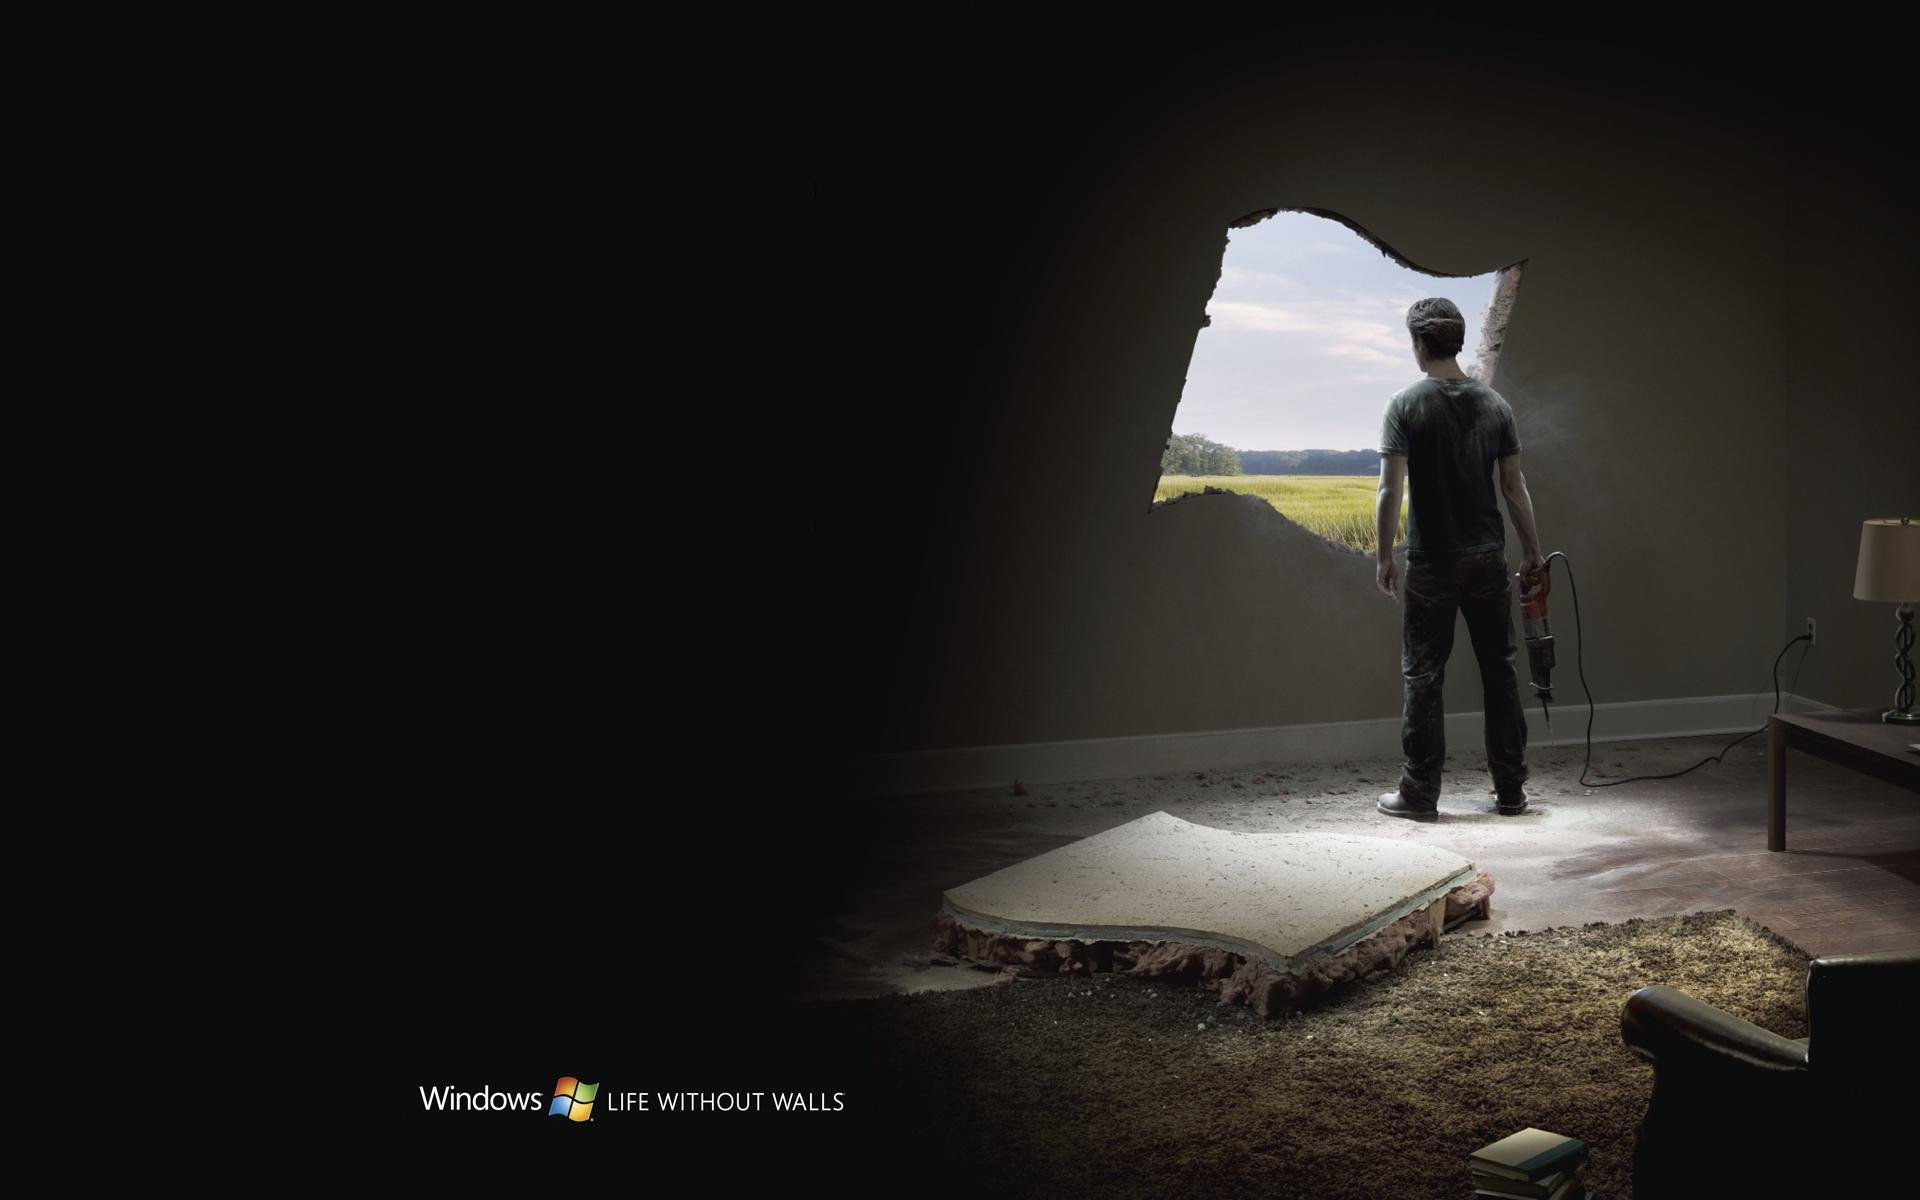 Cool Windows vs Walls Wallpapers   Keith Combs Blahg   Site Home 1920x1200